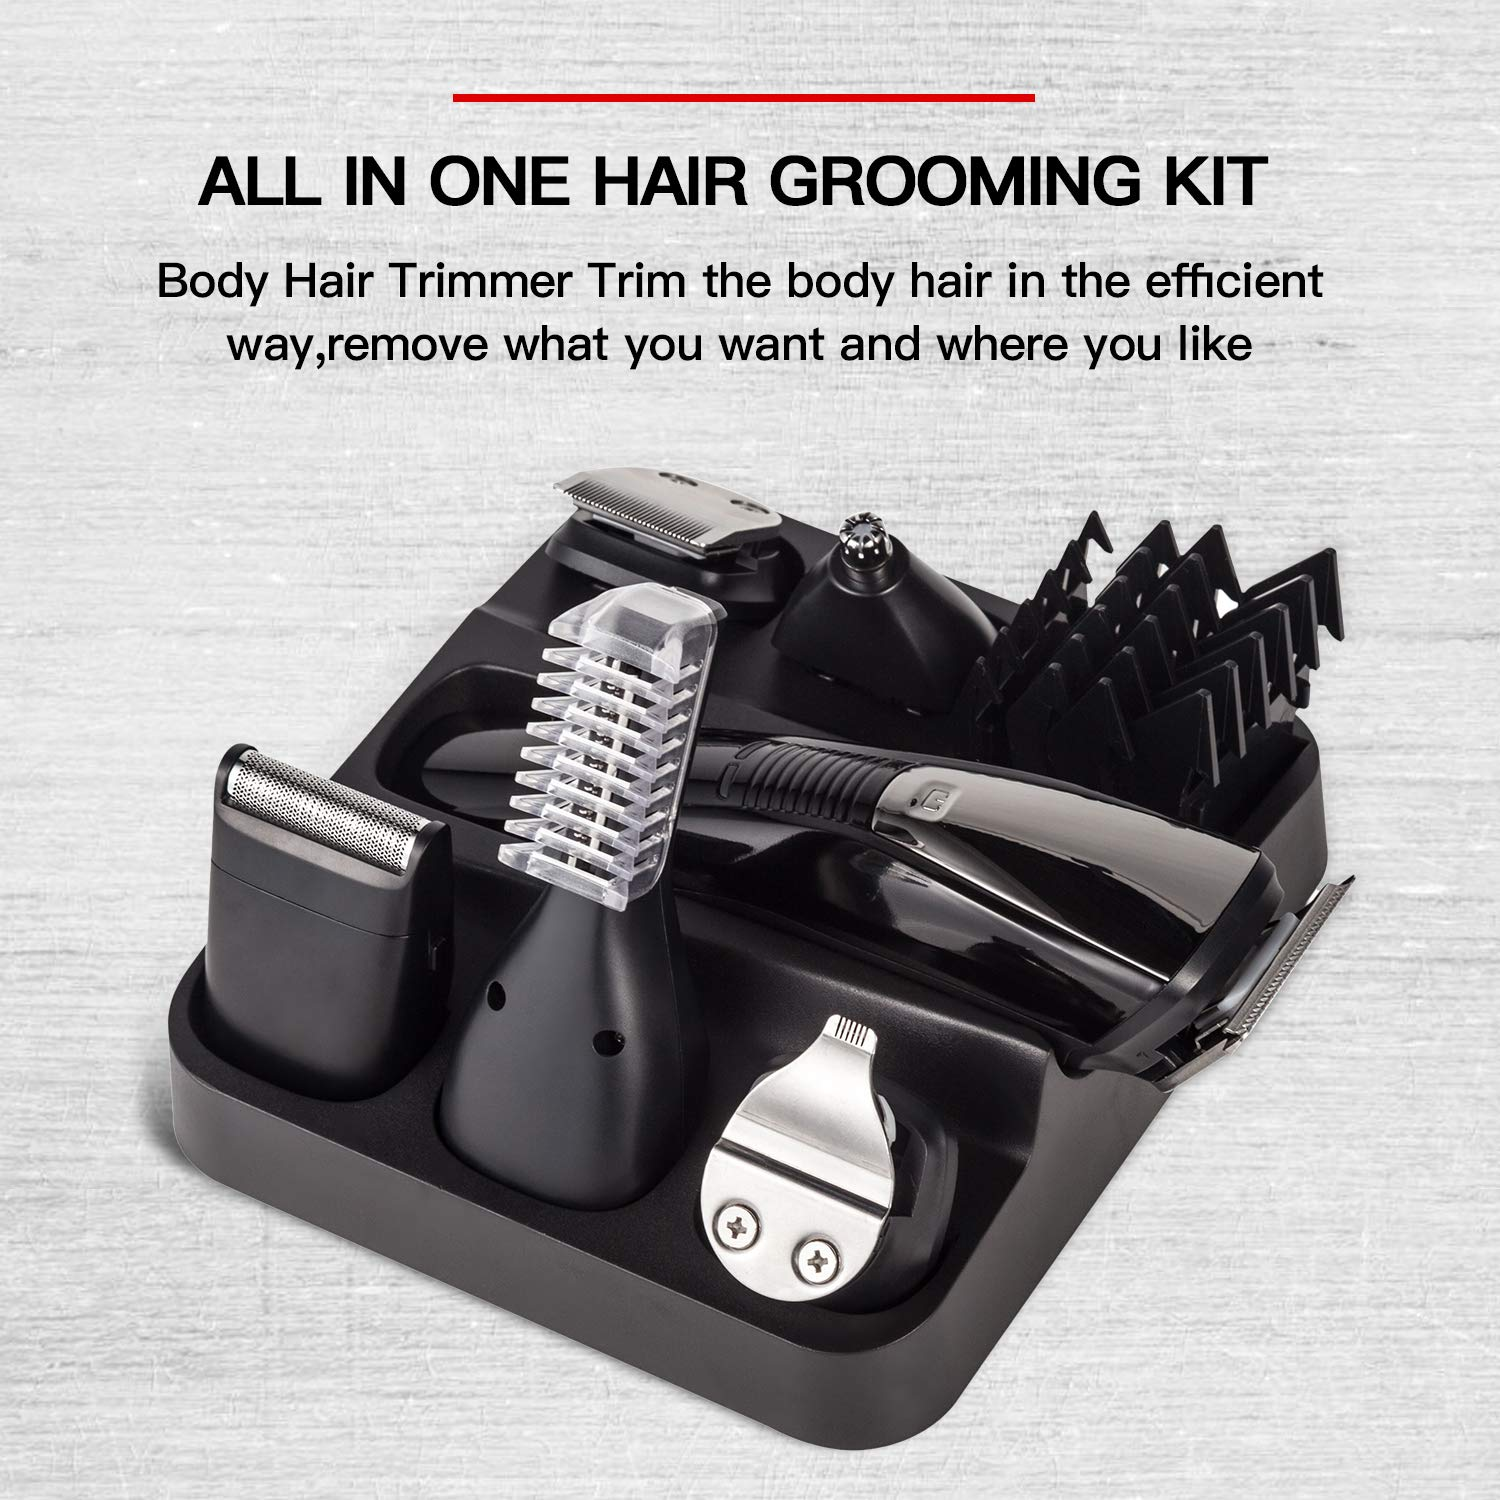 Professional 6 In 1 Men's Beard Trimmer Kit, Waterproof Hair Clipper Mustache Trimmer Kit